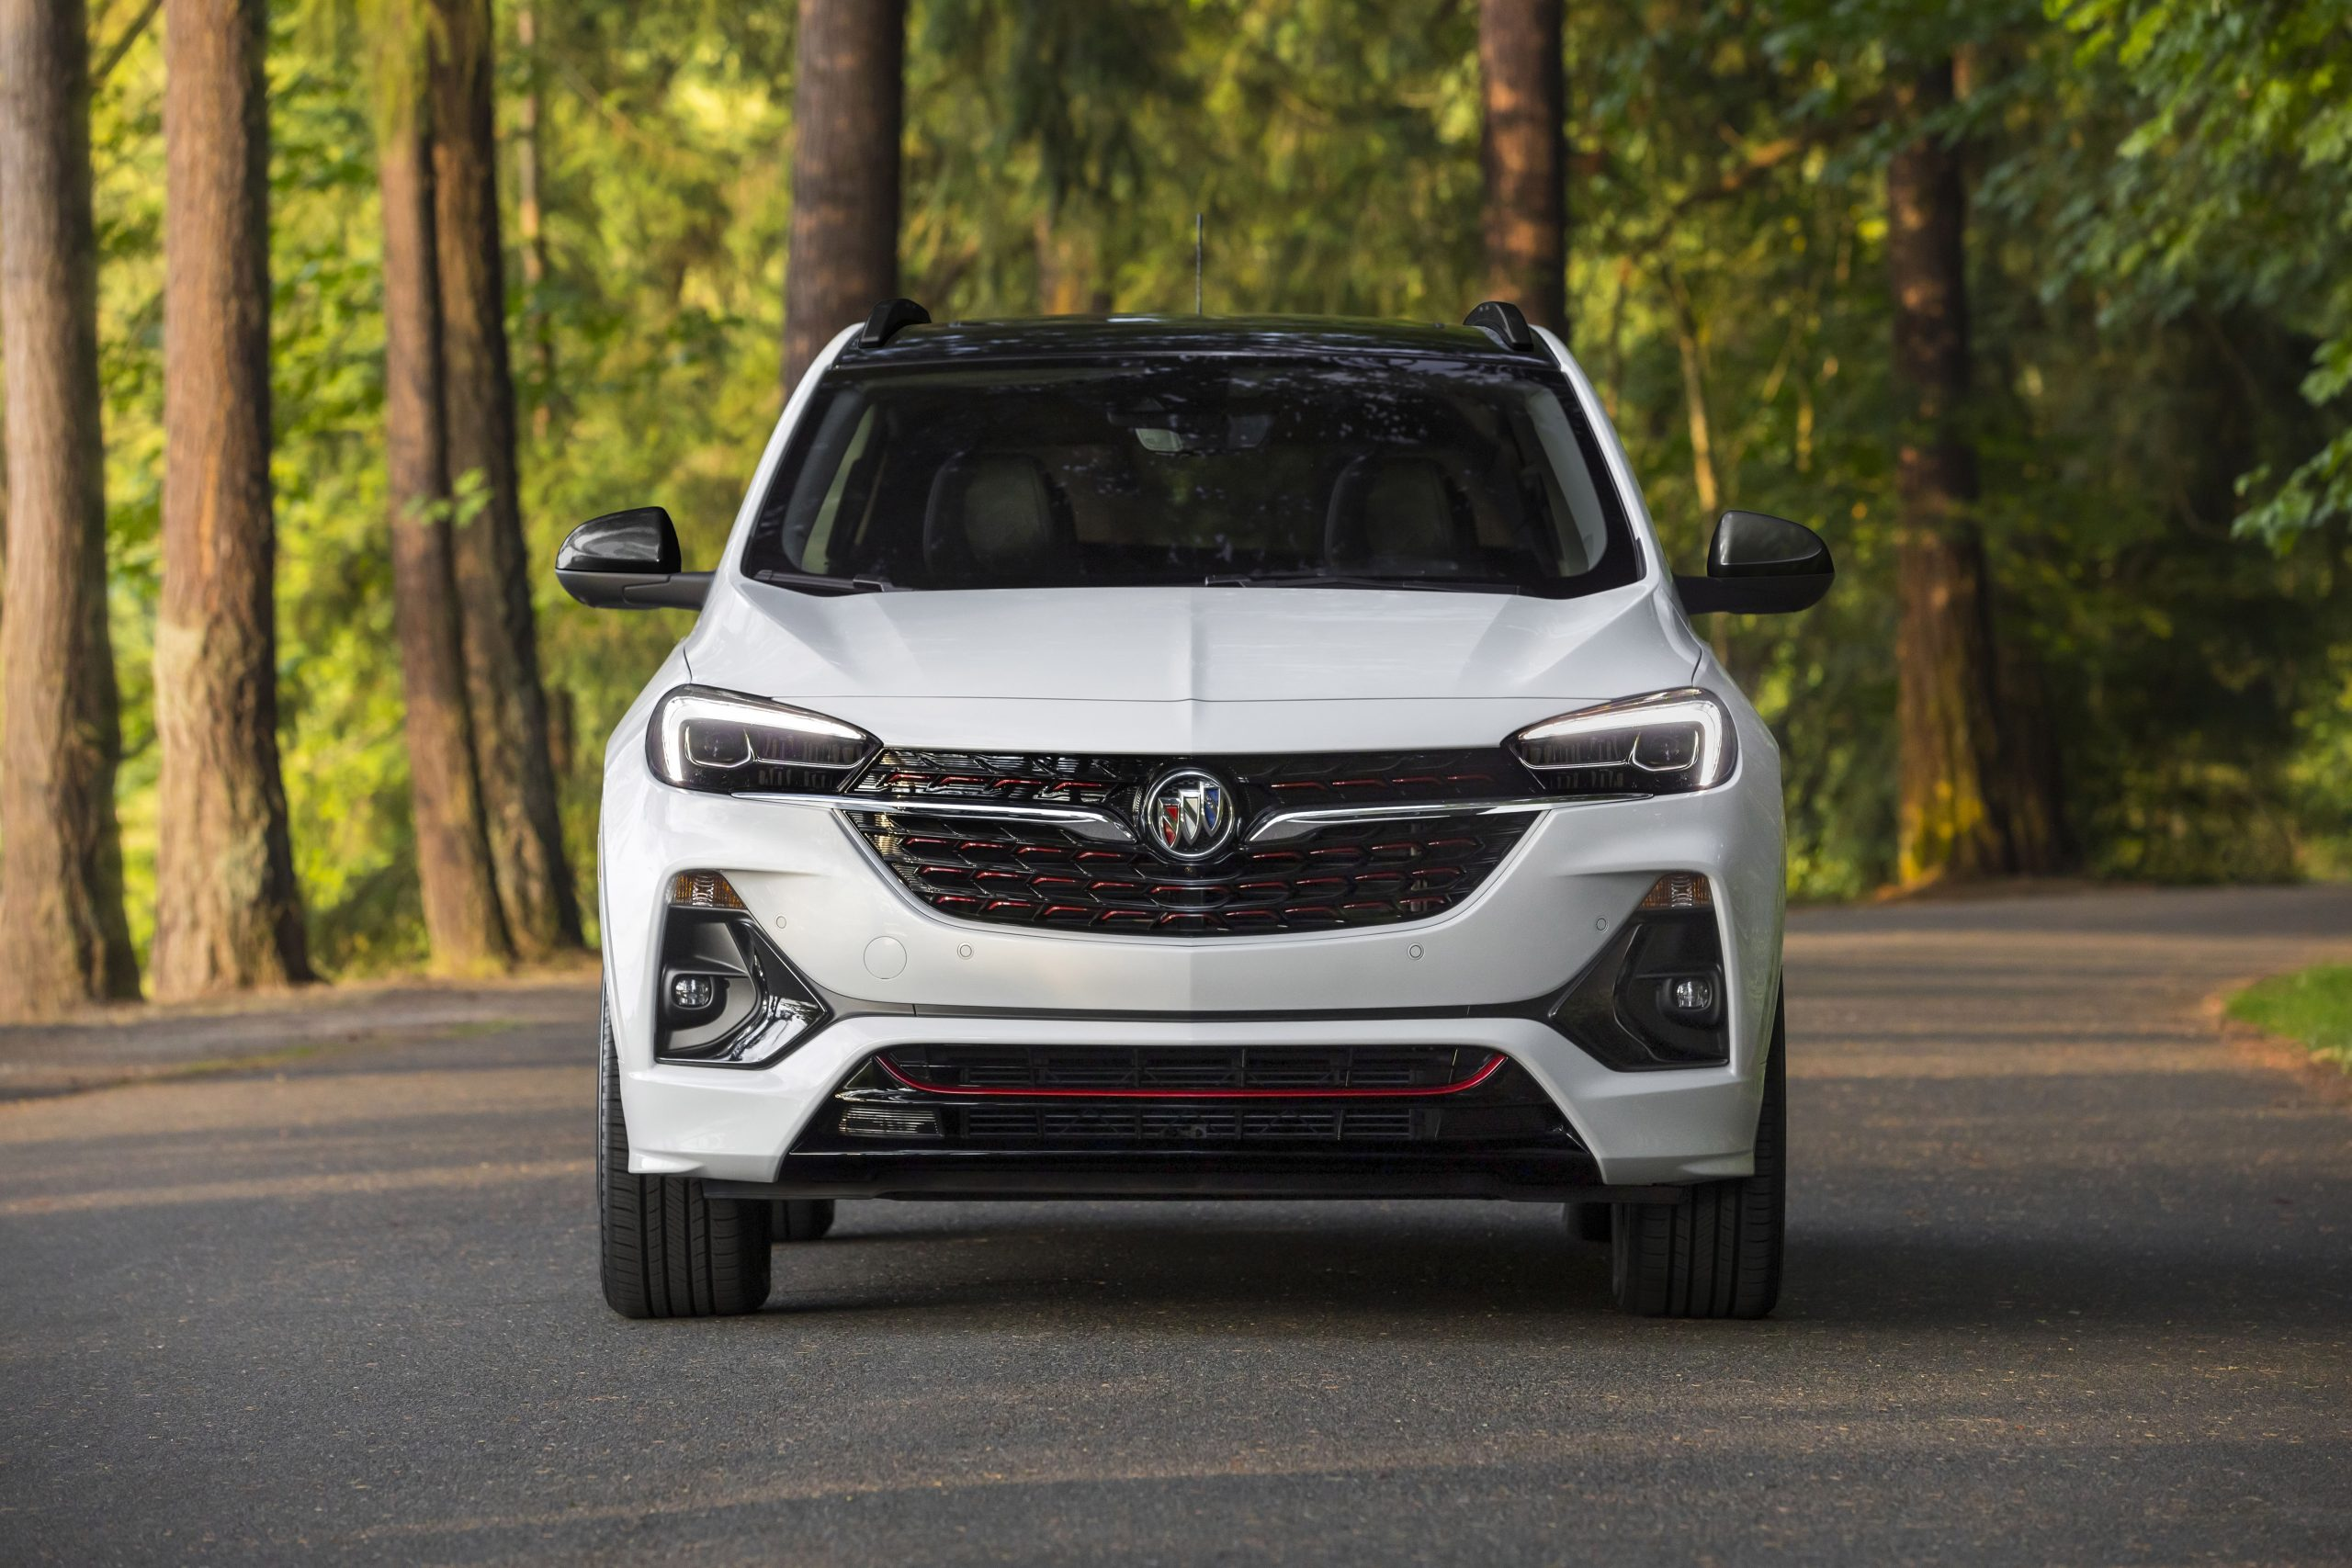 Buick Encore Gx Debuts In La | Gm Authority When Is The New 2022 Buick Encore Gx Coming Out